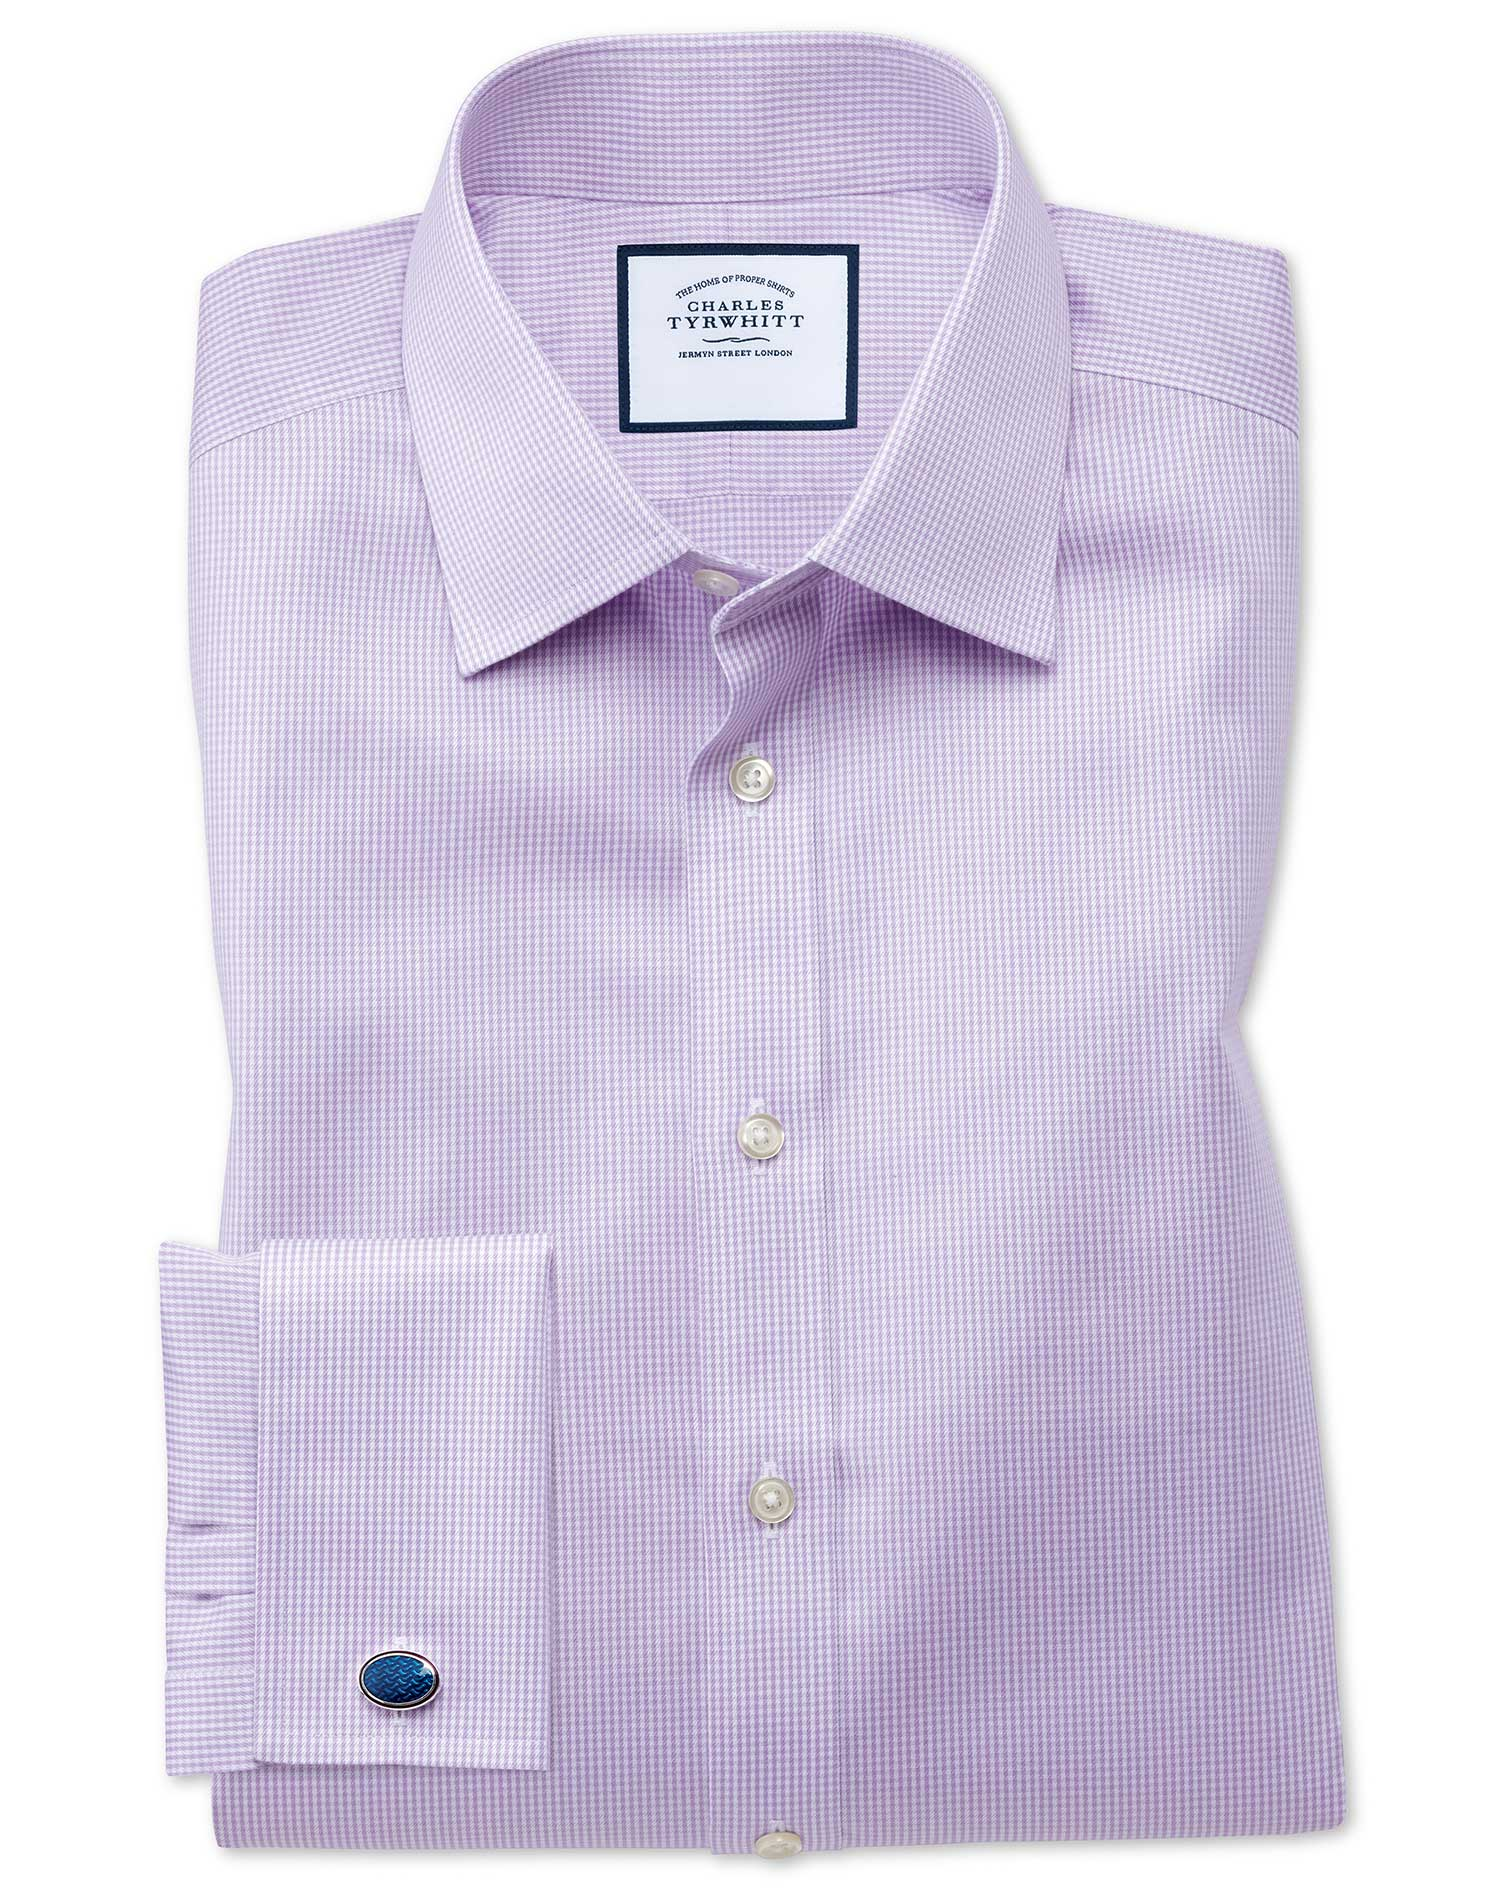 Slim Fit Non-Iron Puppytooth Lilac Cotton Formal Shirt Single Cuff Size 15/35 by Charles Tyrwhitt